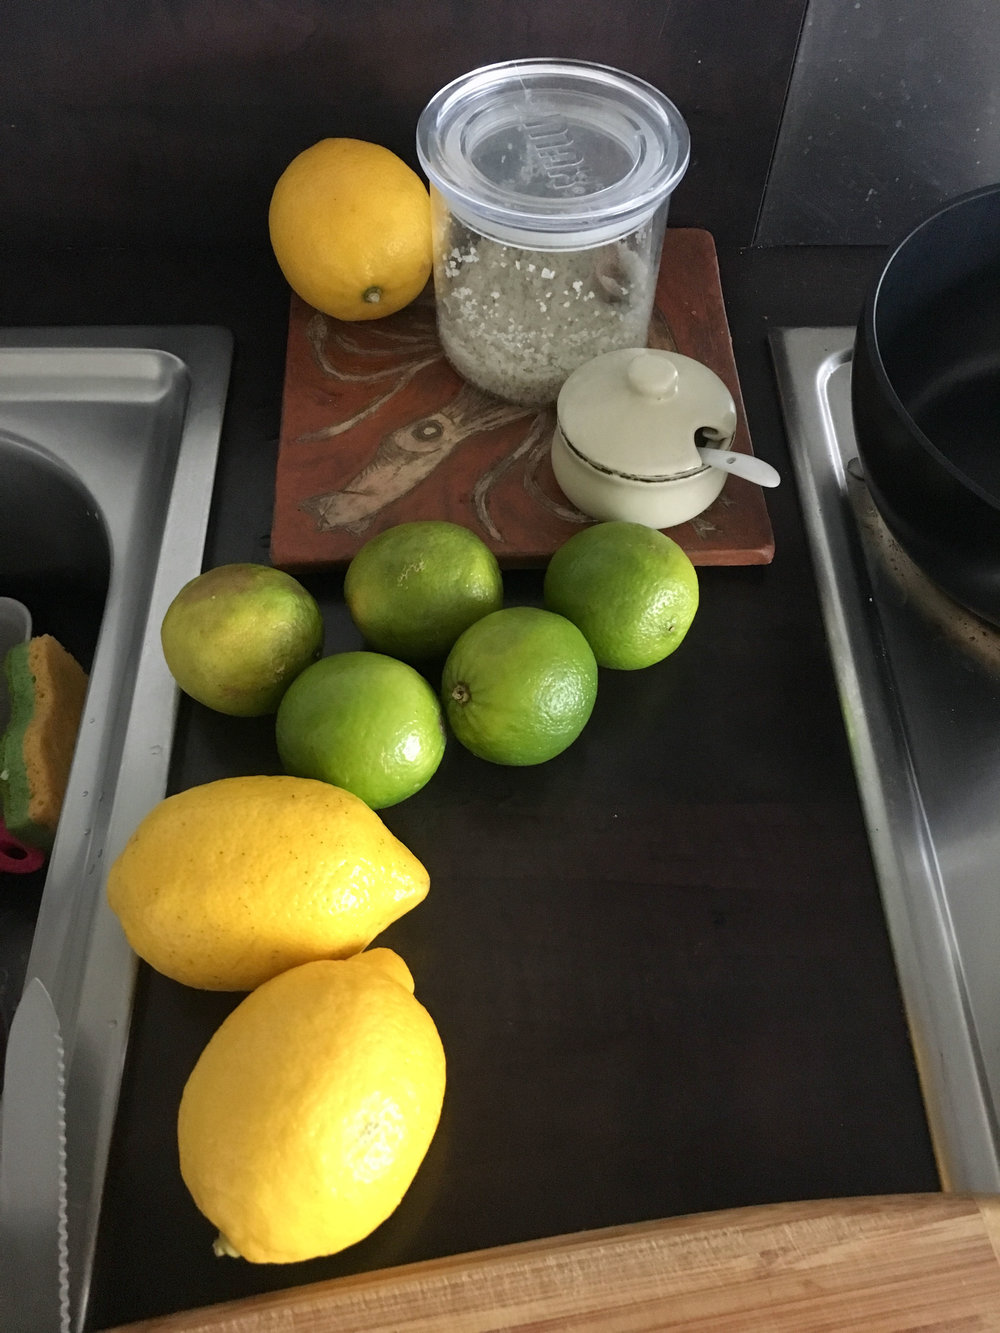 I buy bunch of lemons and limes quite often and squeezing anytime into anywhere. Specially in Summer for Lemon water!